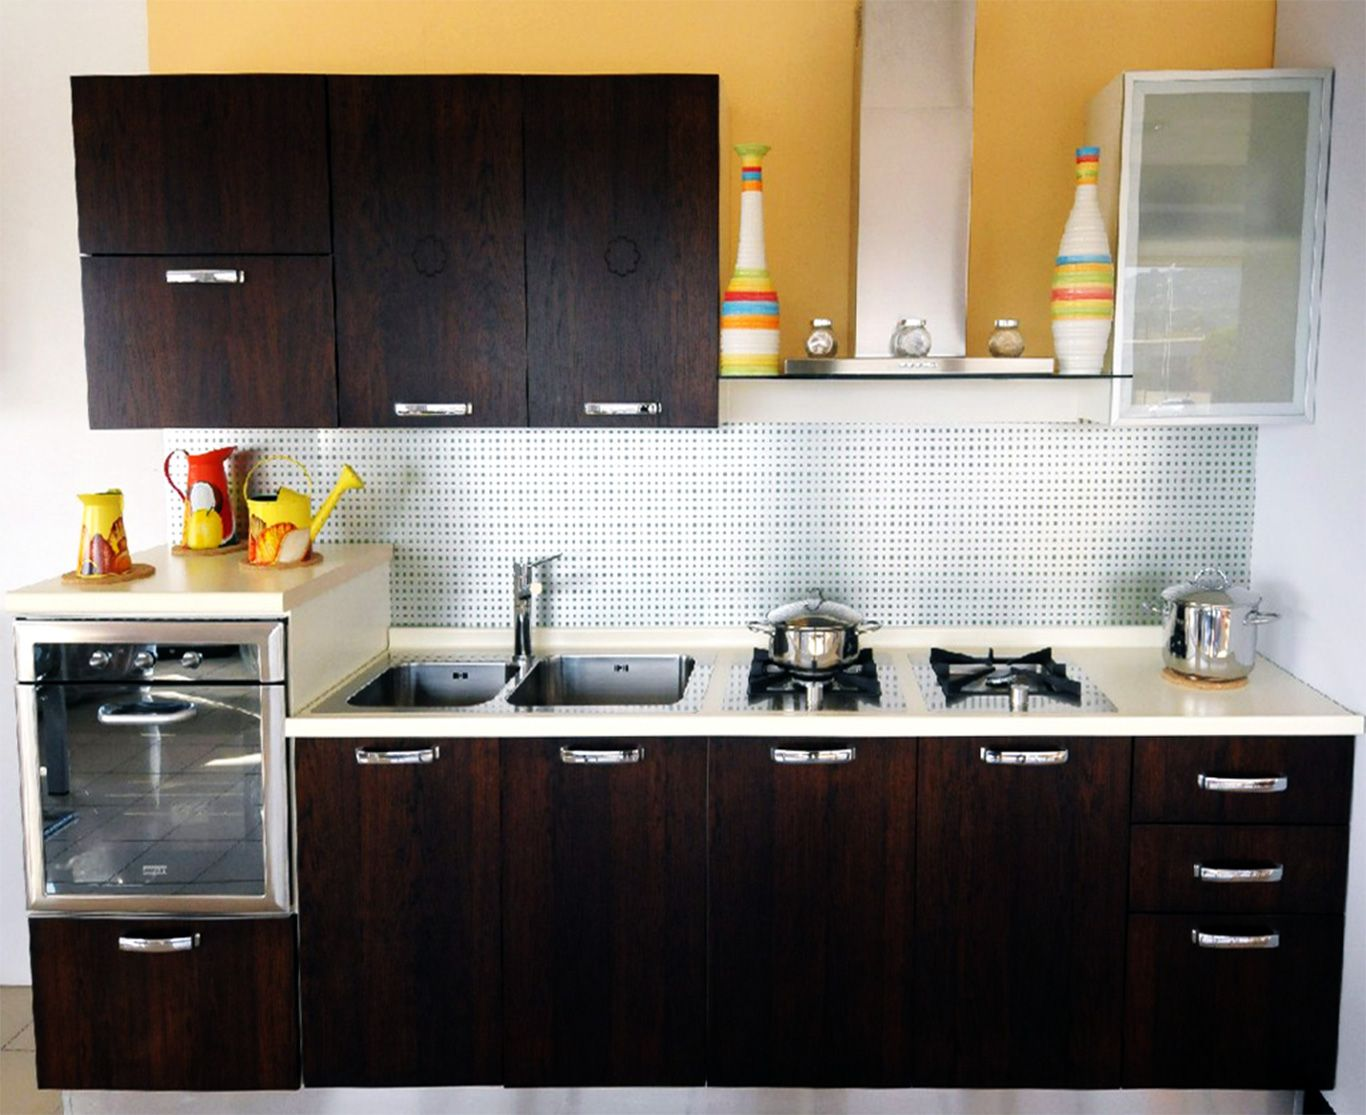 Kitchen Furniture Company Pune Kitchens Is The Modular Kitchen Shutters Supplier Company In